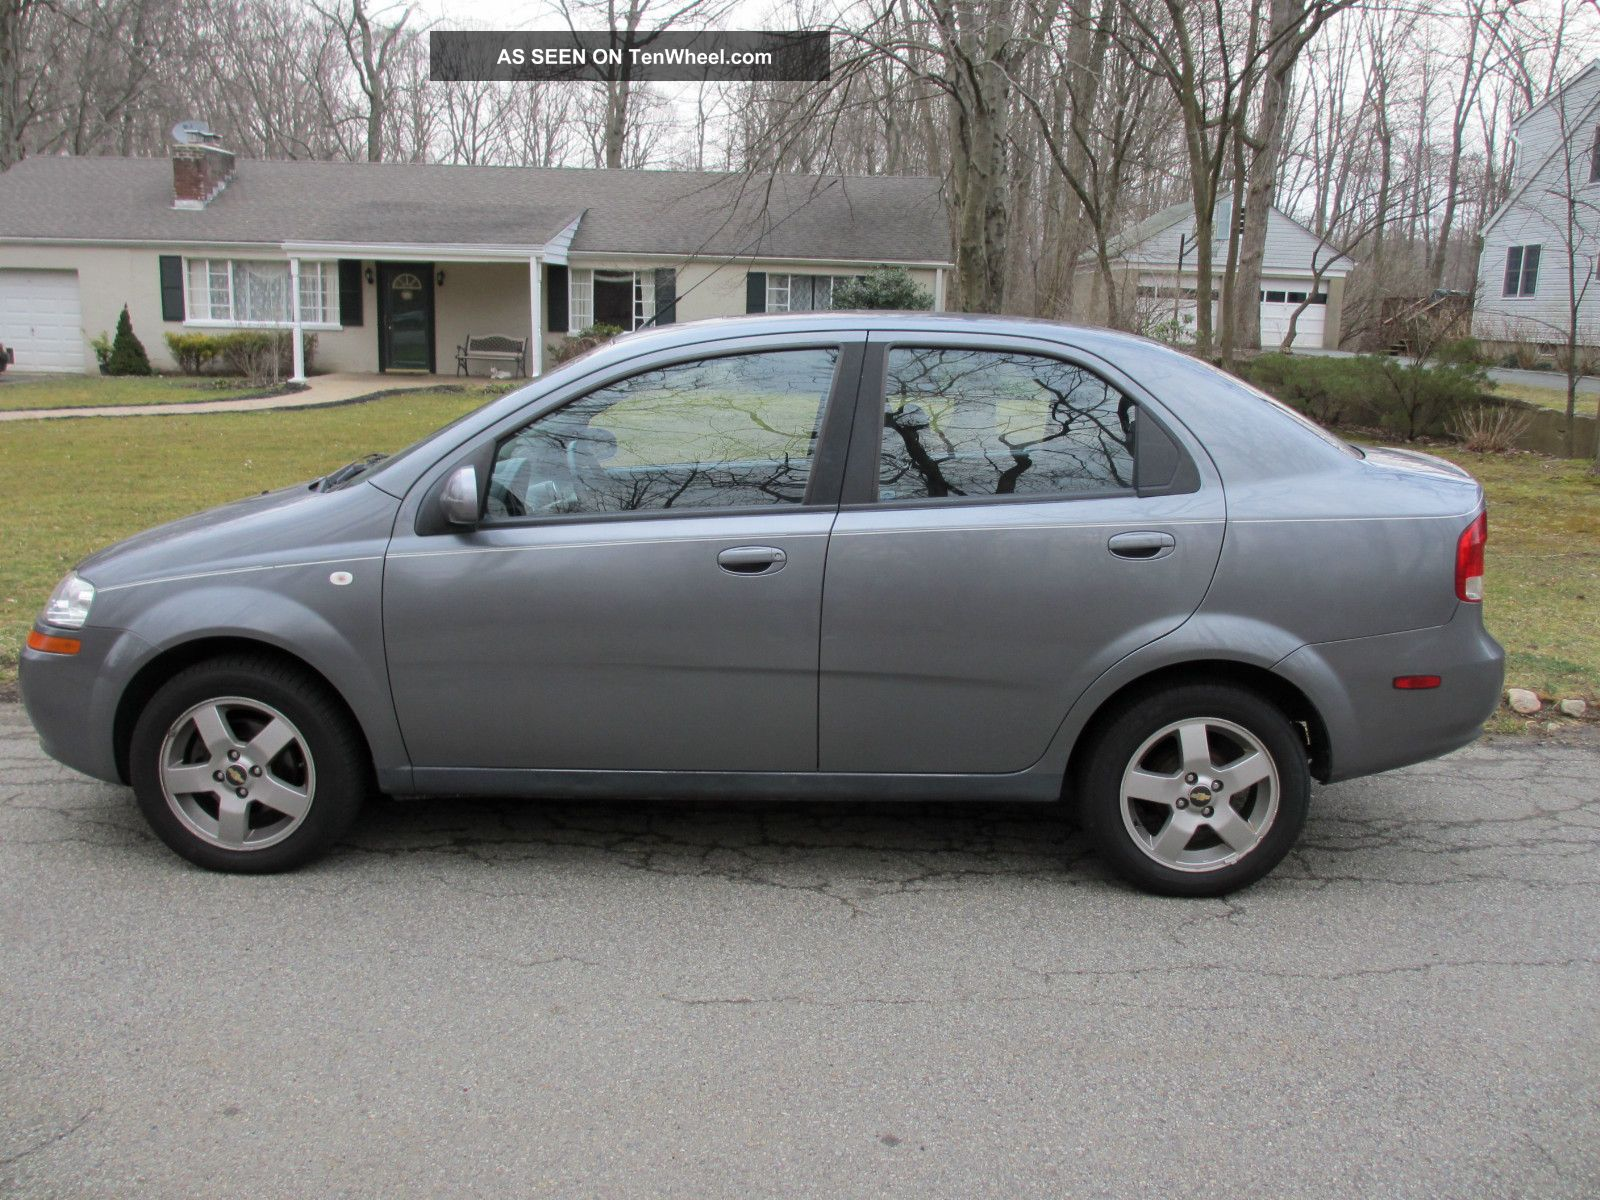 2006 Chevrolet Aveo Lt Sedan 4 Door 1 6l